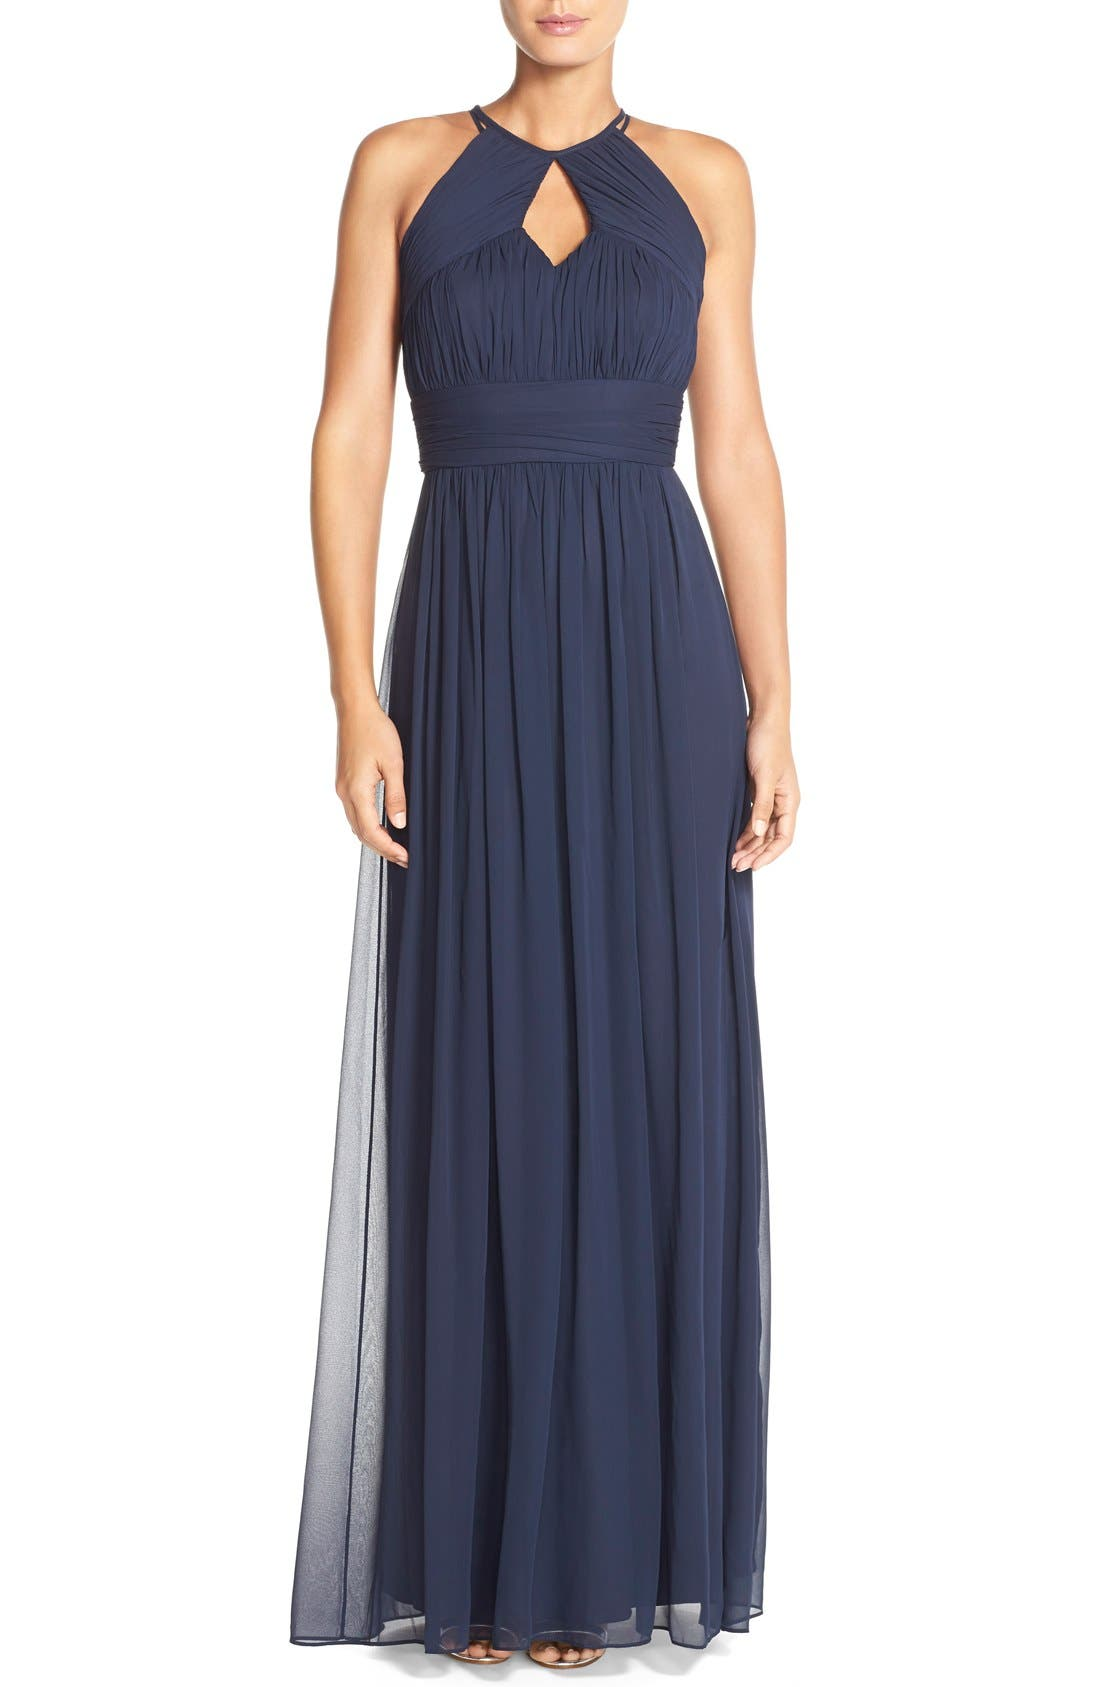 Dessy Collection Ruched Chiffon Keyhole Halter Gown,                             Main thumbnail 1, color,                             405